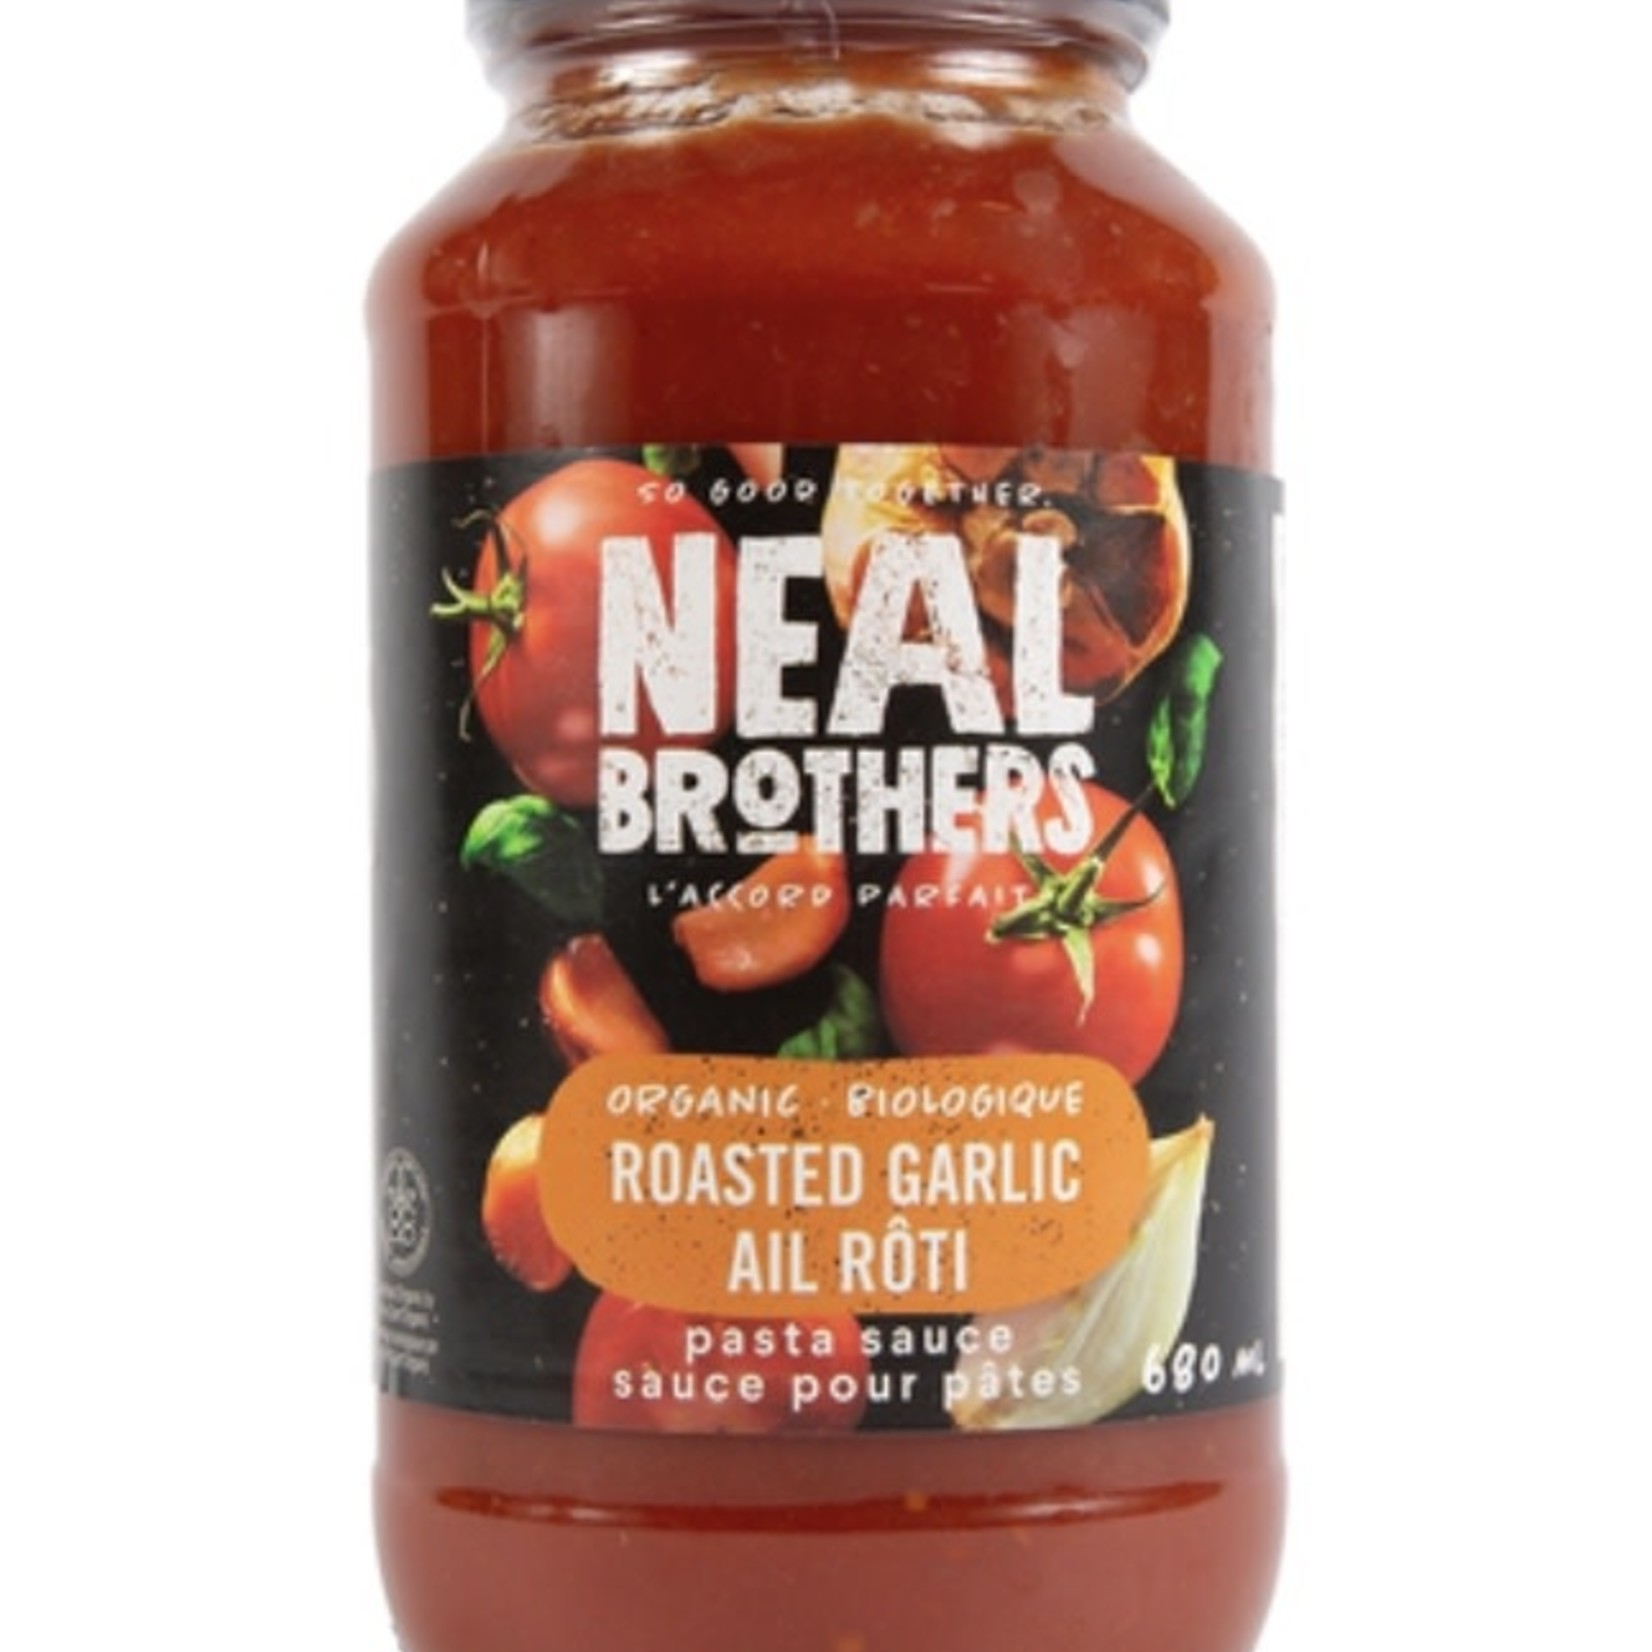 Neal Brothers Neal Brothers Roasted Garlic Pasta Sauce